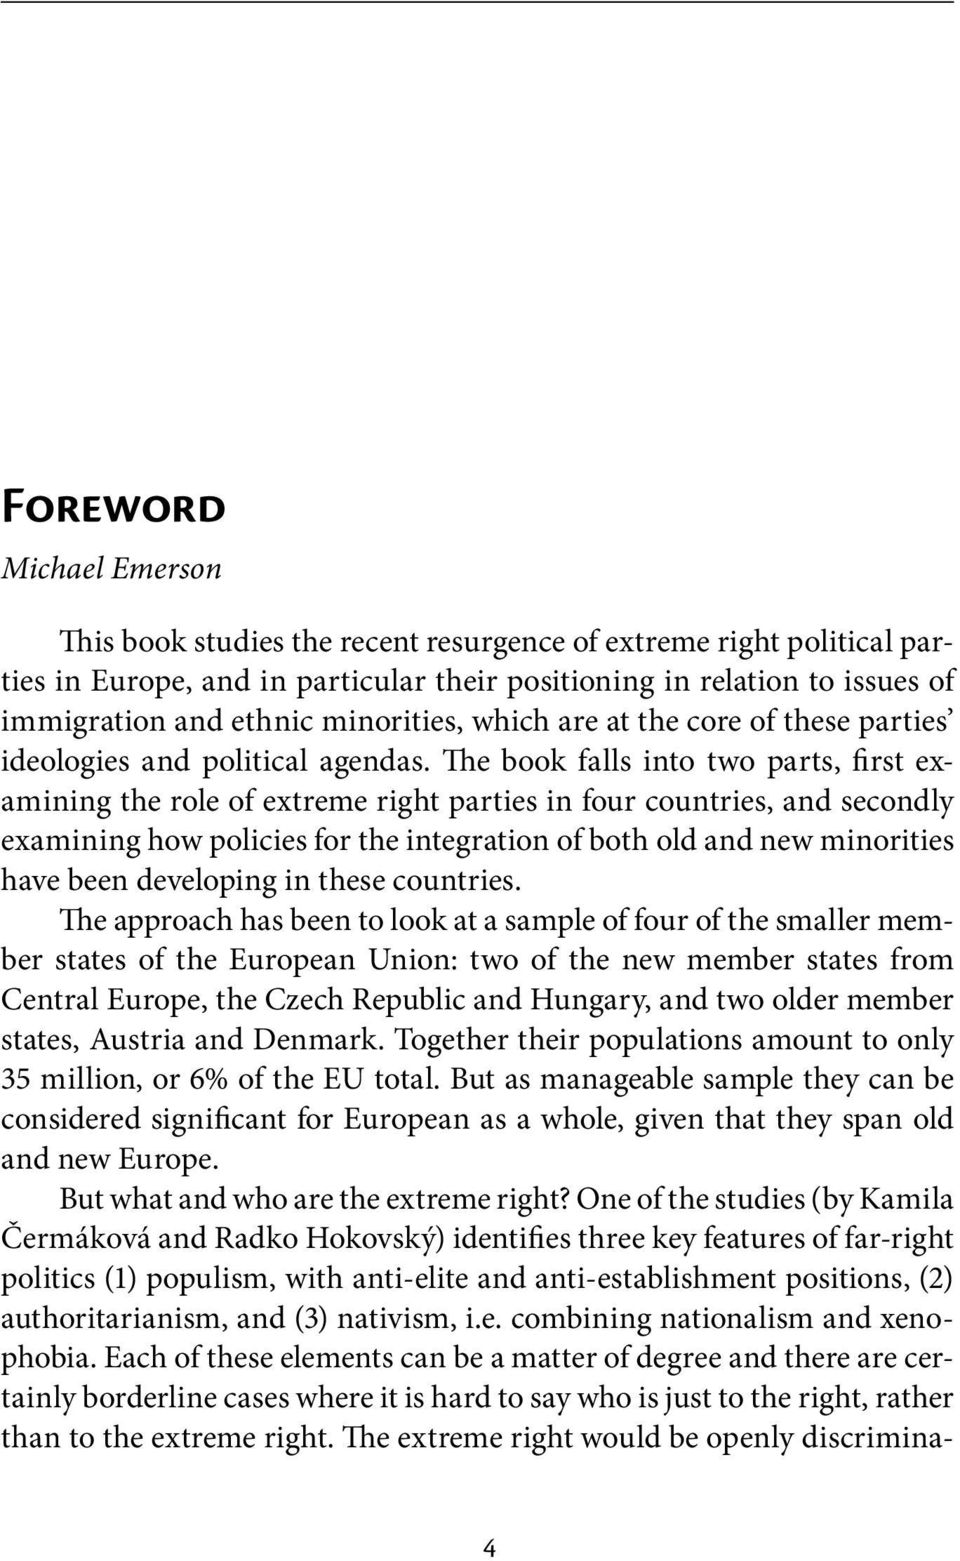 The book falls into two parts, first examining the role of extreme right parties in four countries, and secondly examining how policies for the integration of both old and new minorities have been